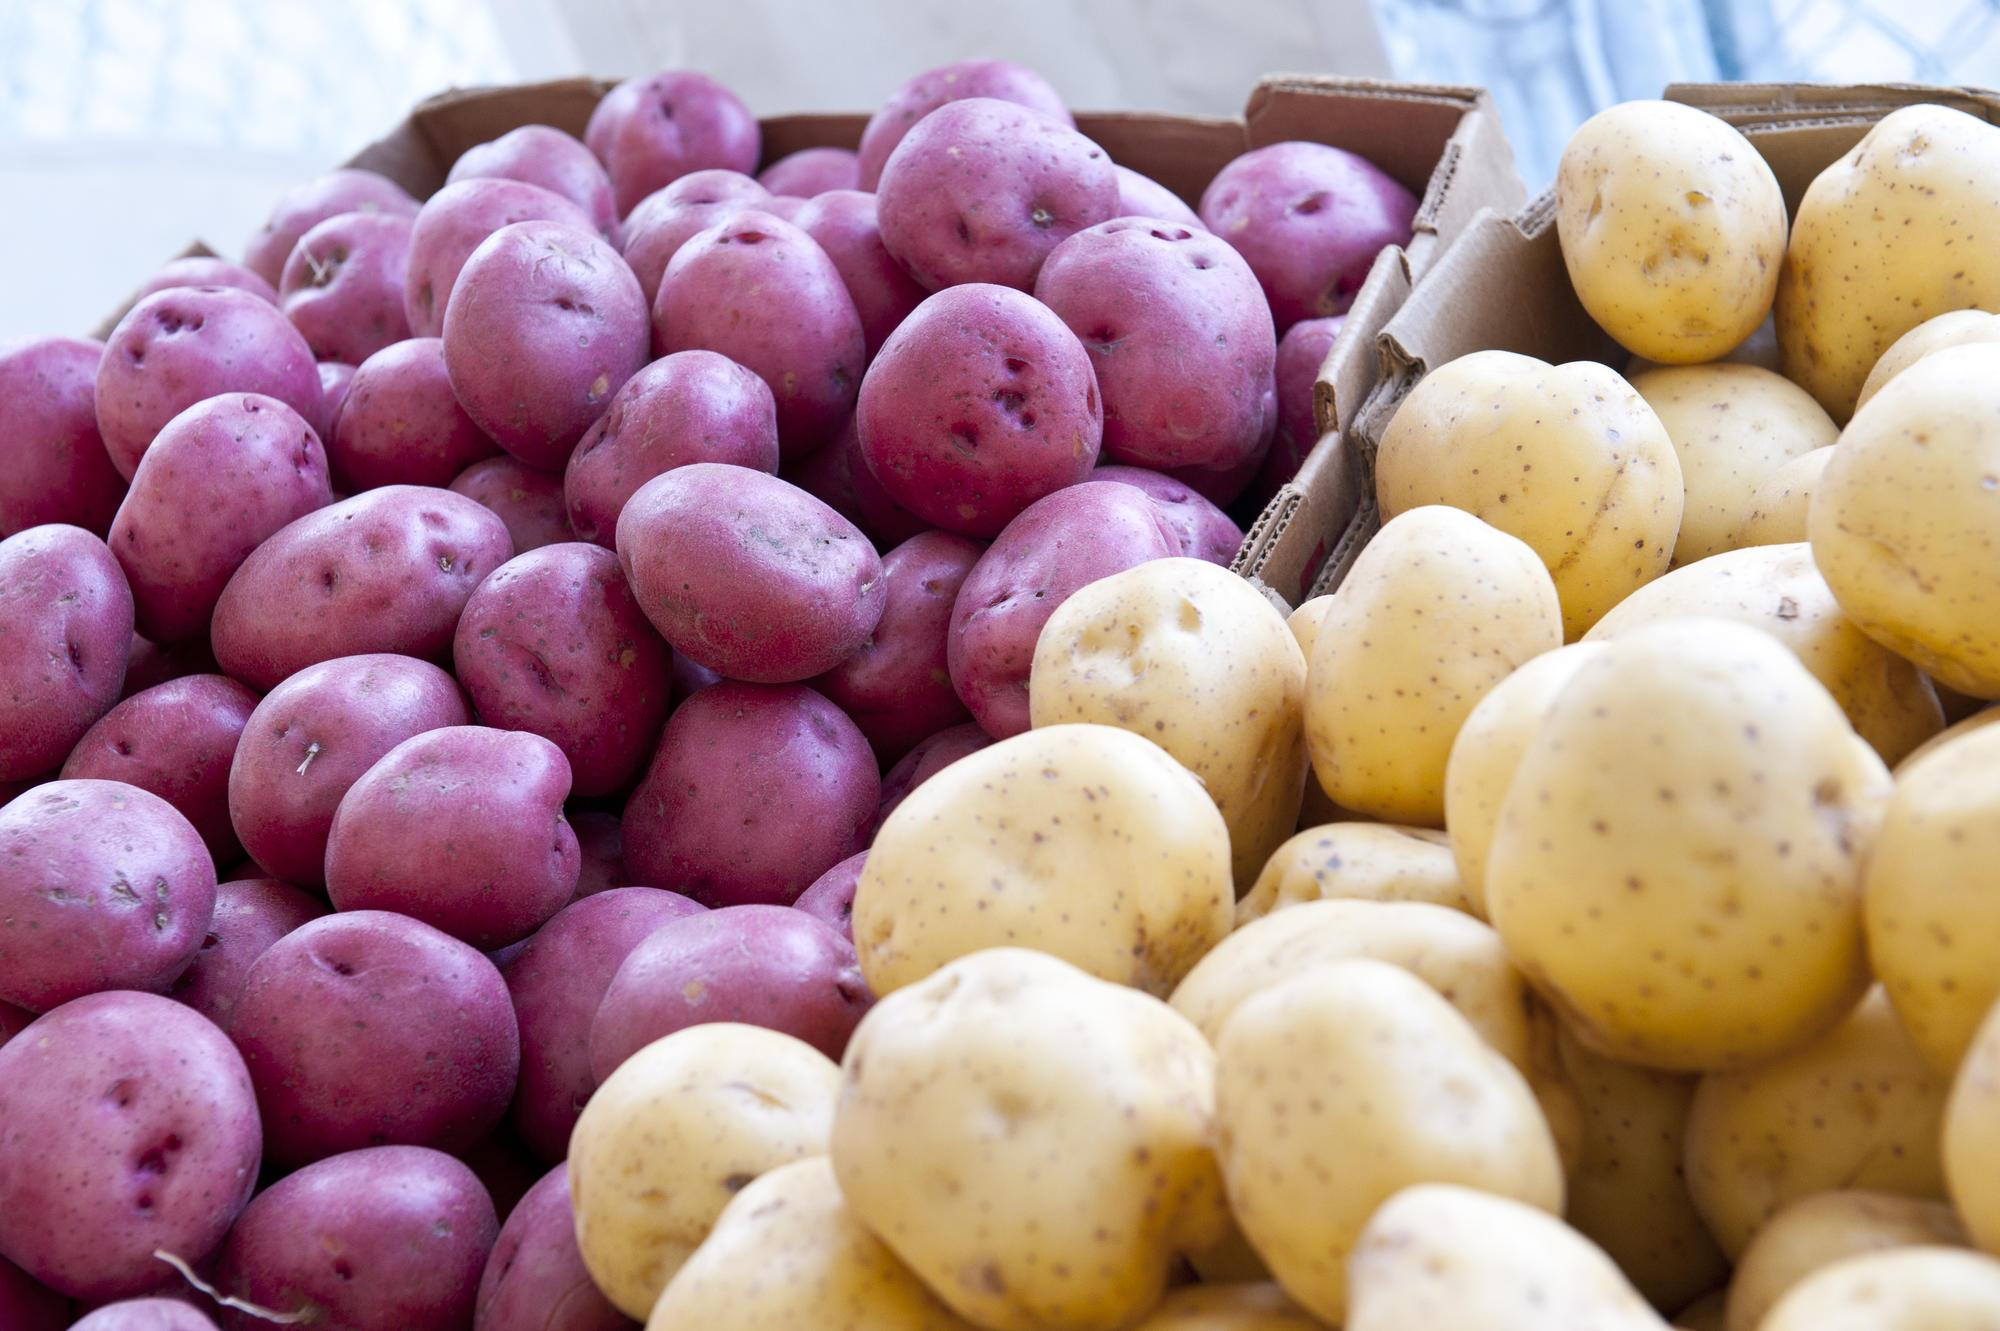 Grow your own potatoes | OSU Extension Service